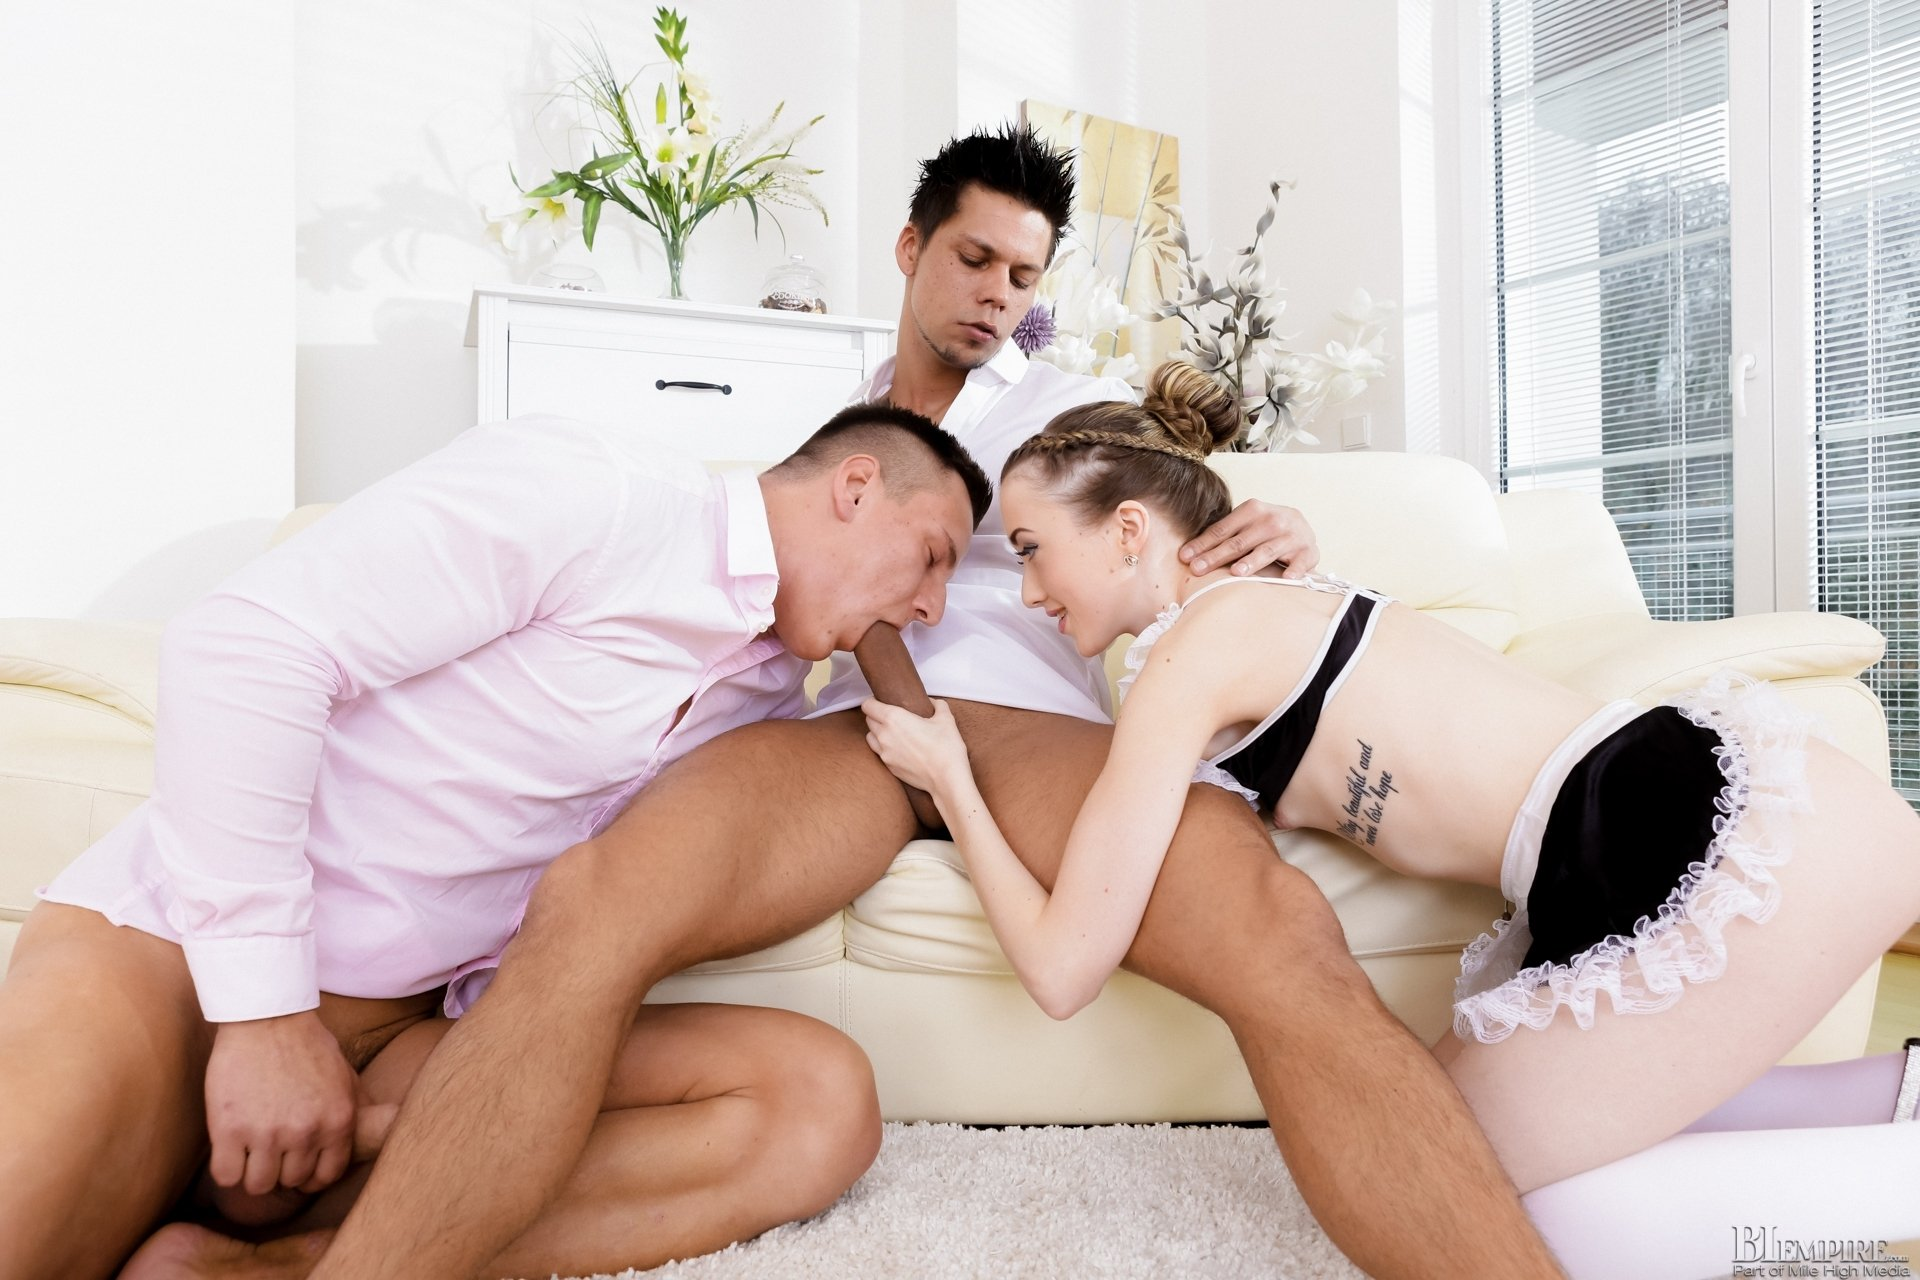 black girls in panties porn there